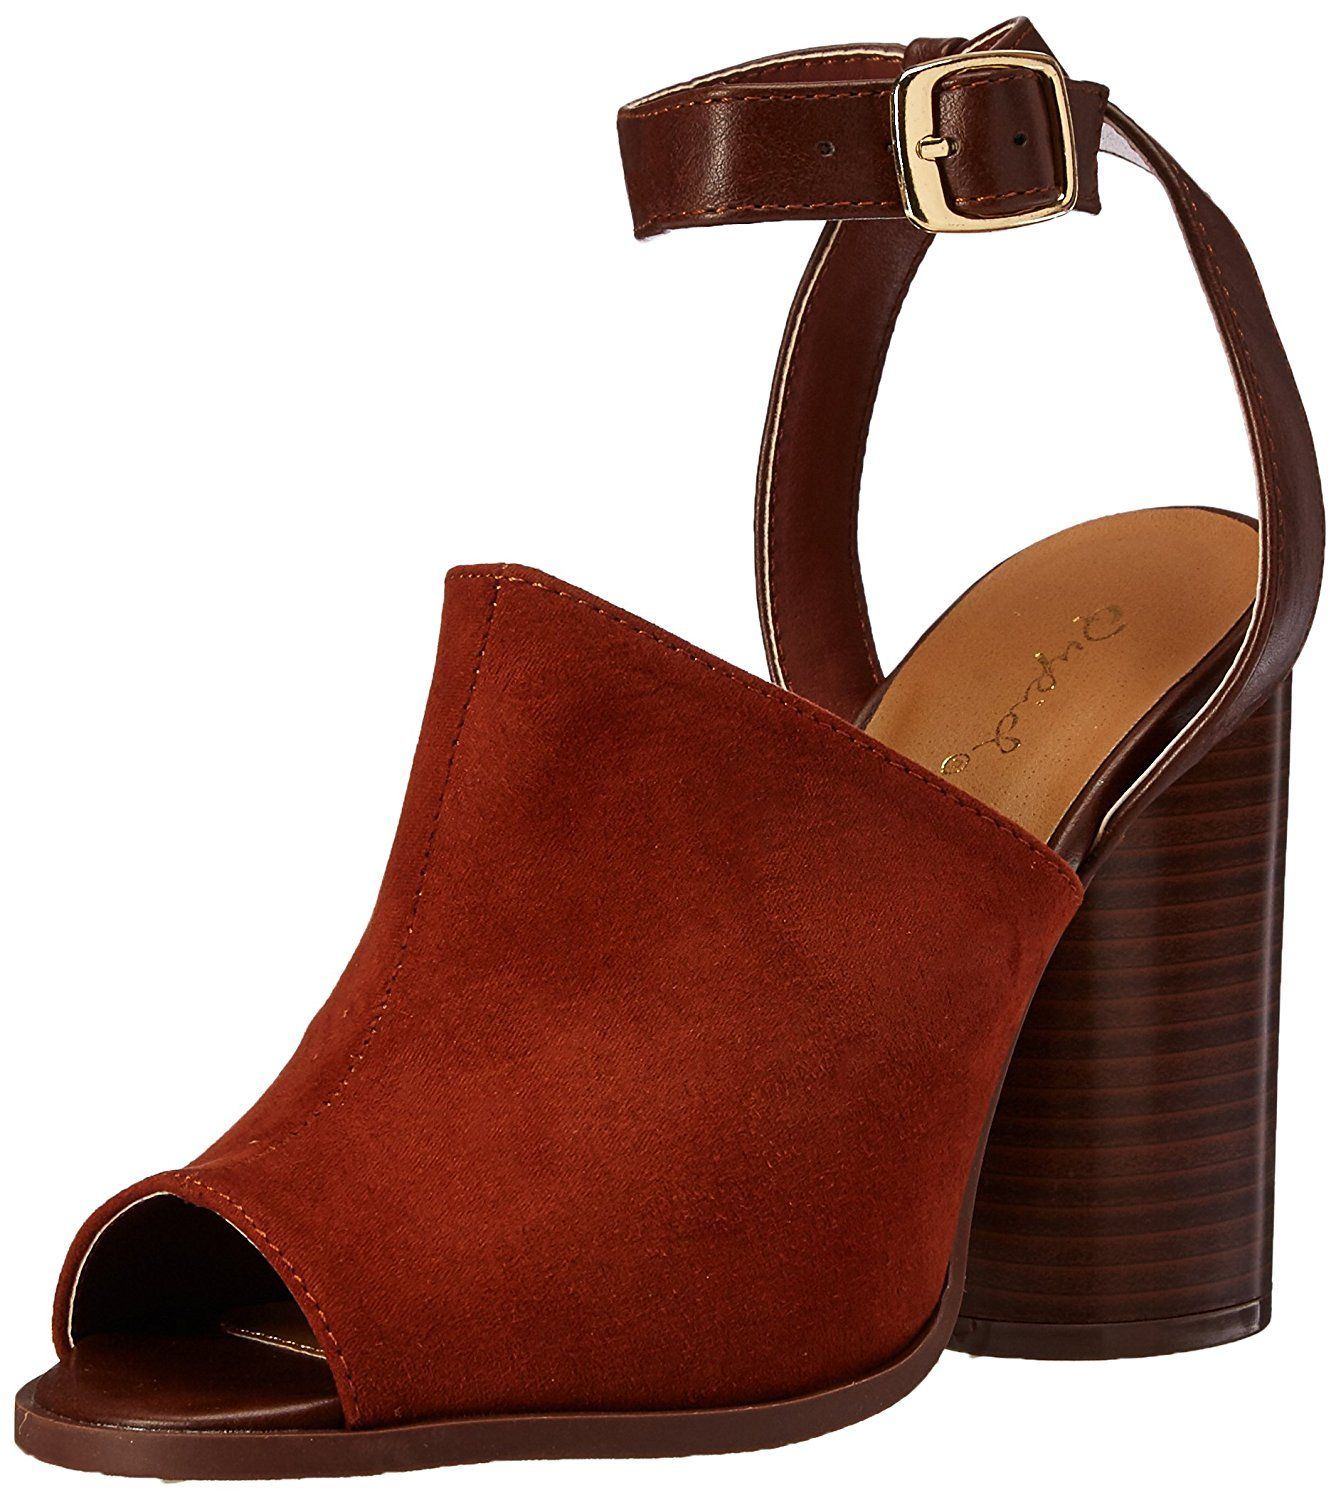 4f7e60fa46e0 Qupid Women s Bondi-02 Heeled Sandal. Architectural faux wood heeled mule  with ankle strap. Women s Shoes